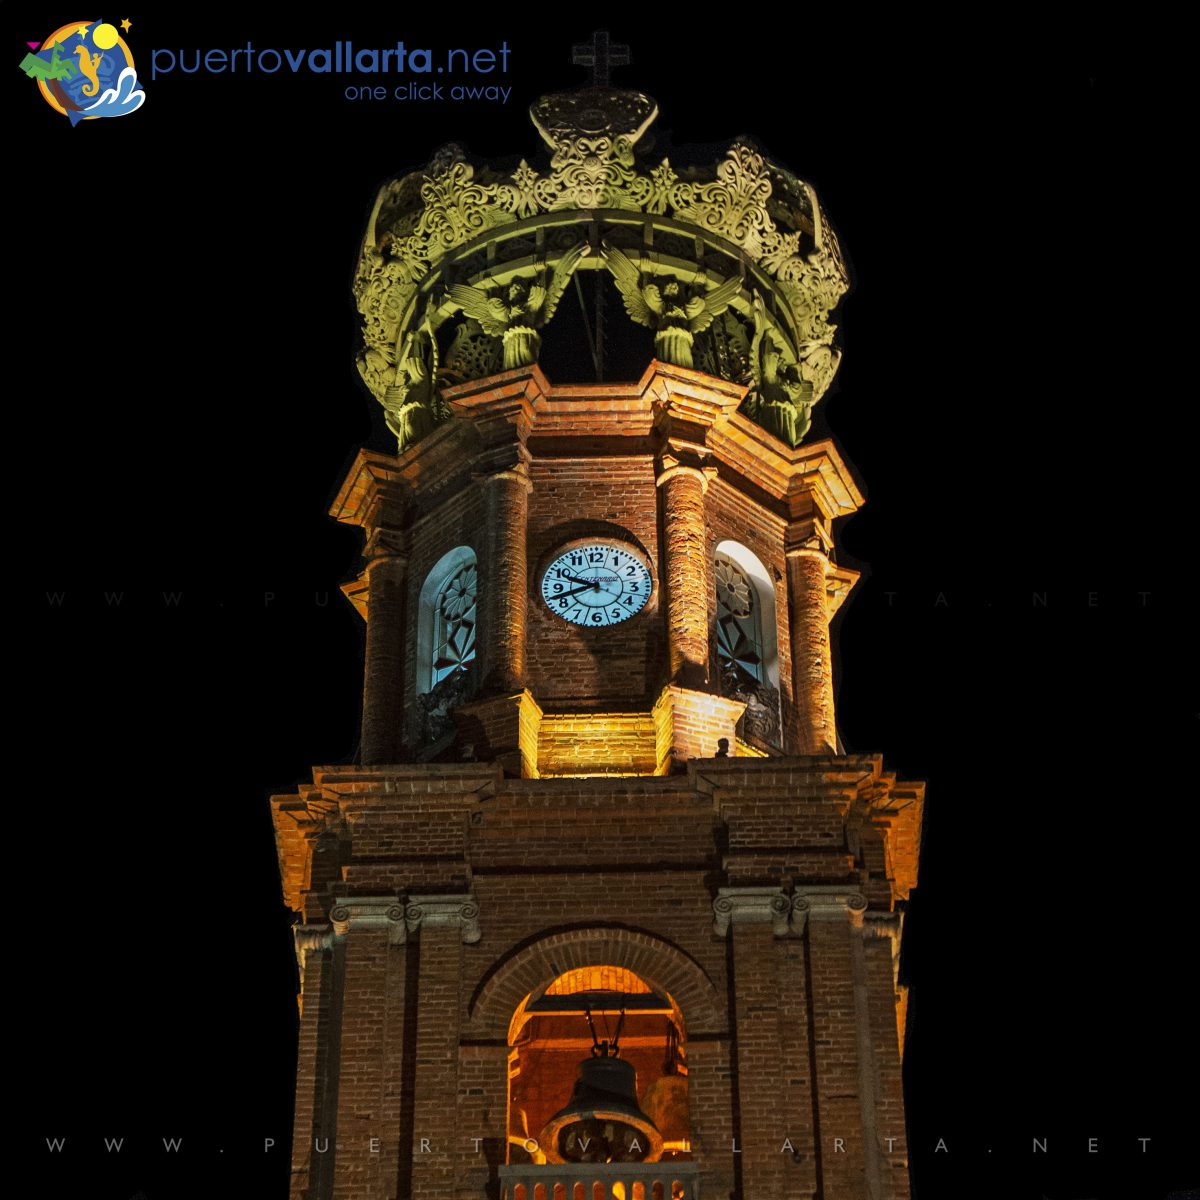 The crown on the Guadalupe Church Tower in downtown Puerto Vallarta